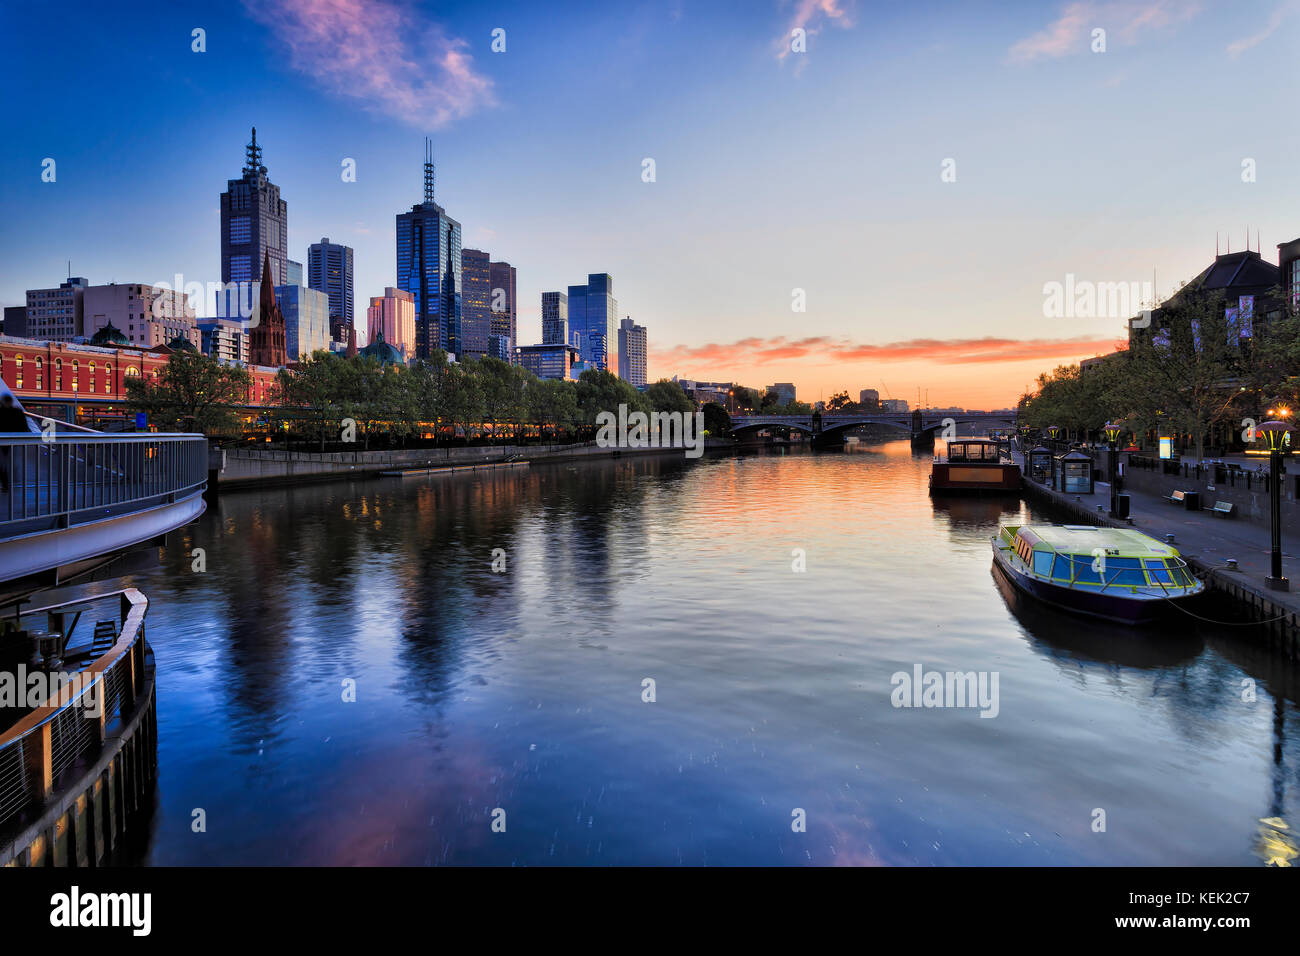 Melbourne city CBD on waterfront along Yarra river with Flinders station and Prince bridge at sunrise reflecting - Stock Image